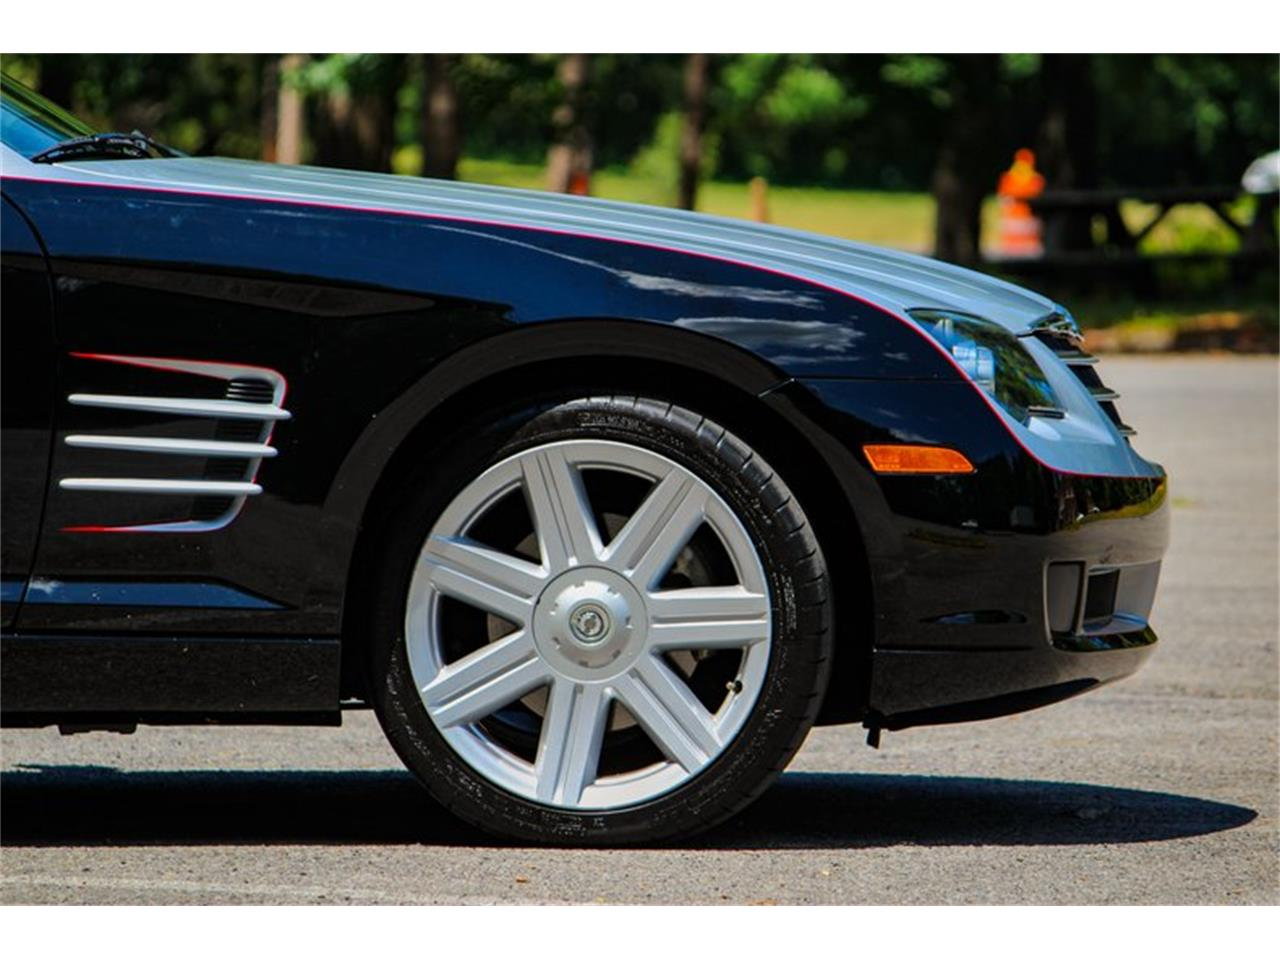 2005 Chrysler Crossfire (CC-1360490) for sale in Saratoga Springs, New York